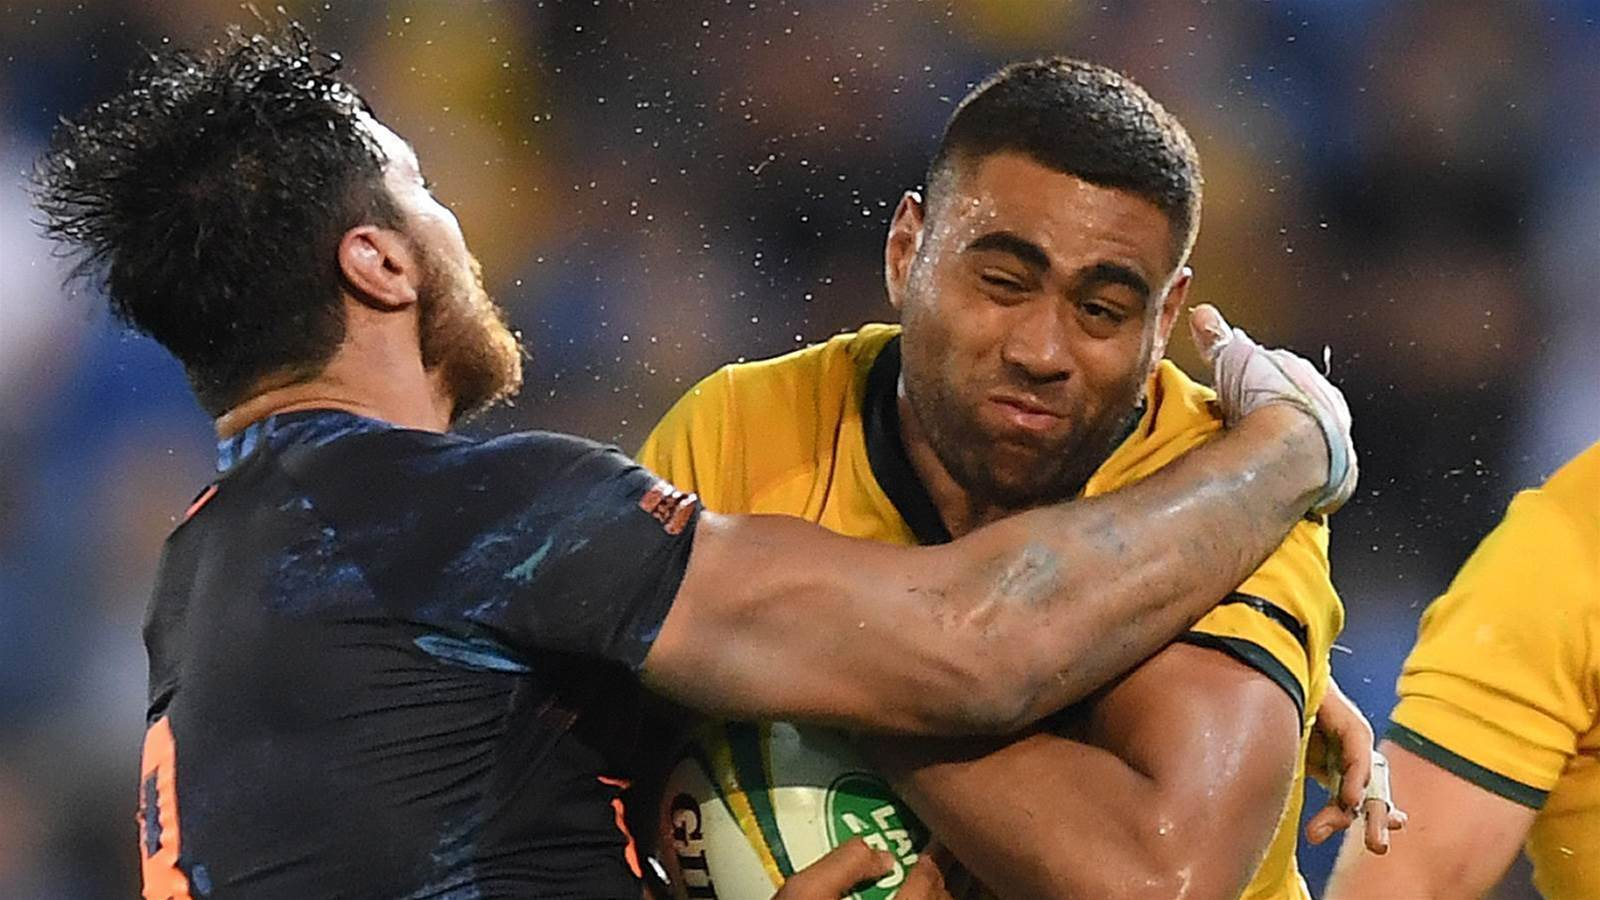 Tui cleared over blow up with Wallabies fan